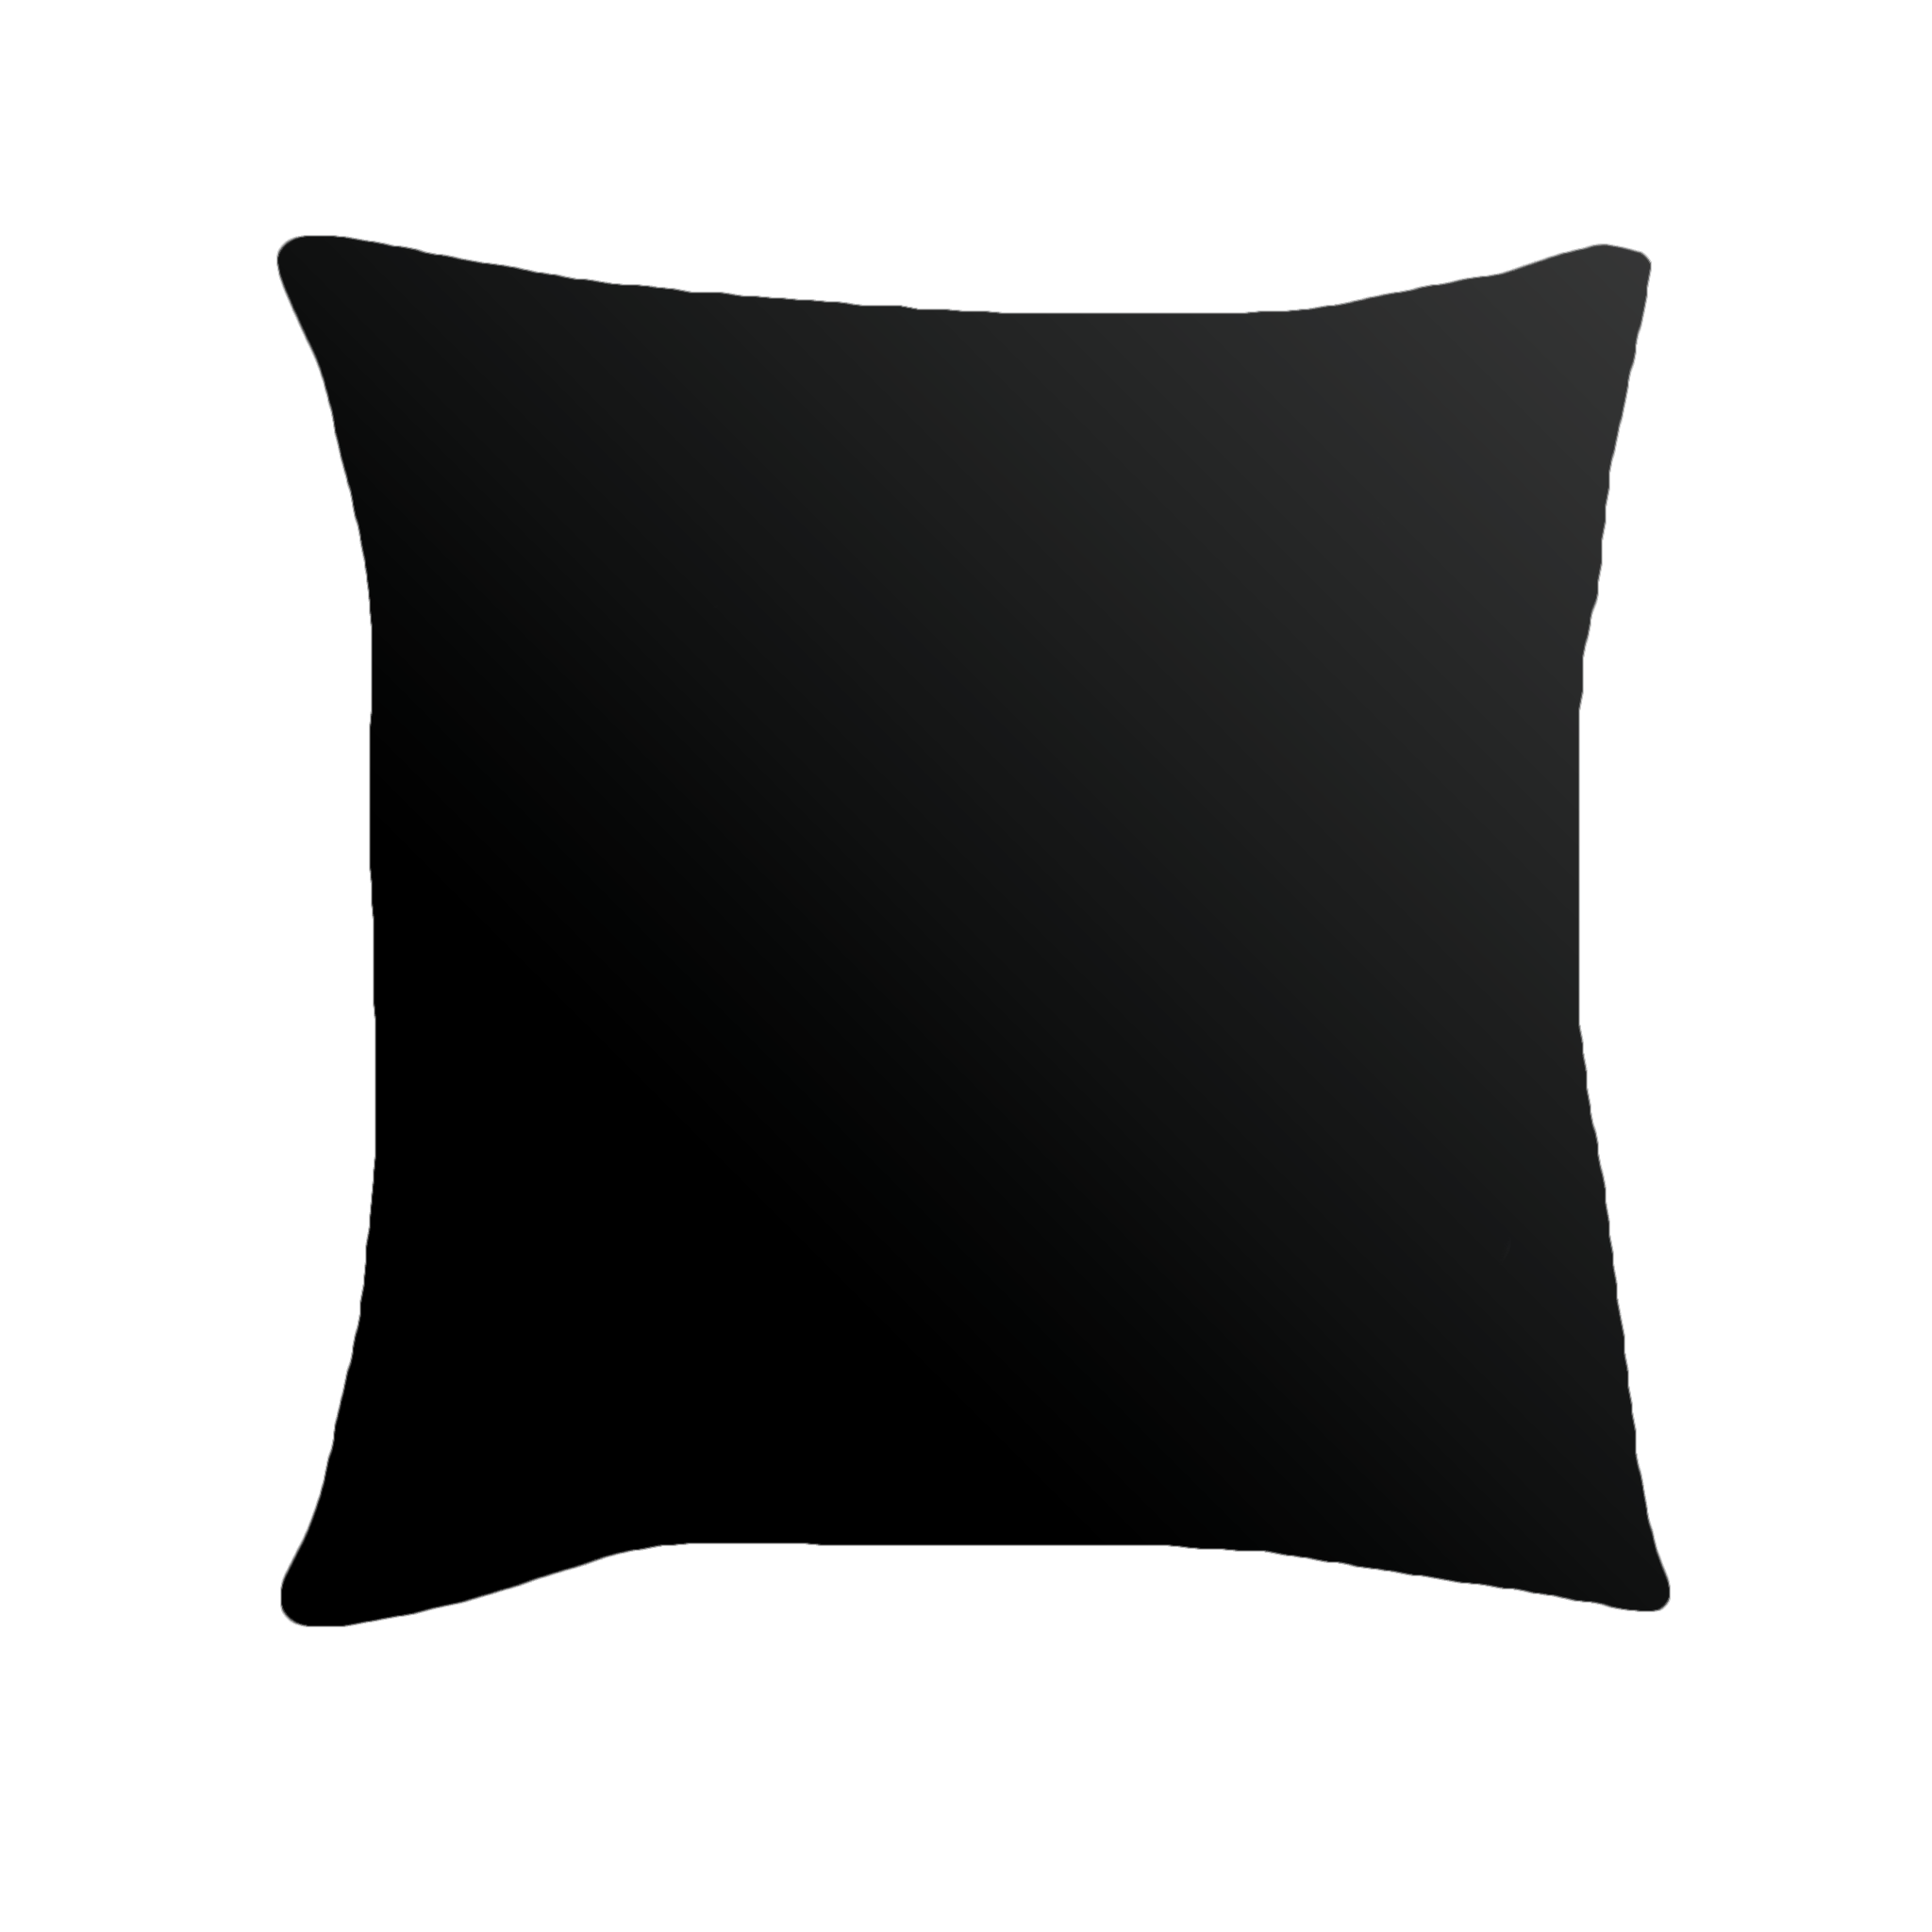 pillow for couch ani tpt throws down decorative at throw home pillows and